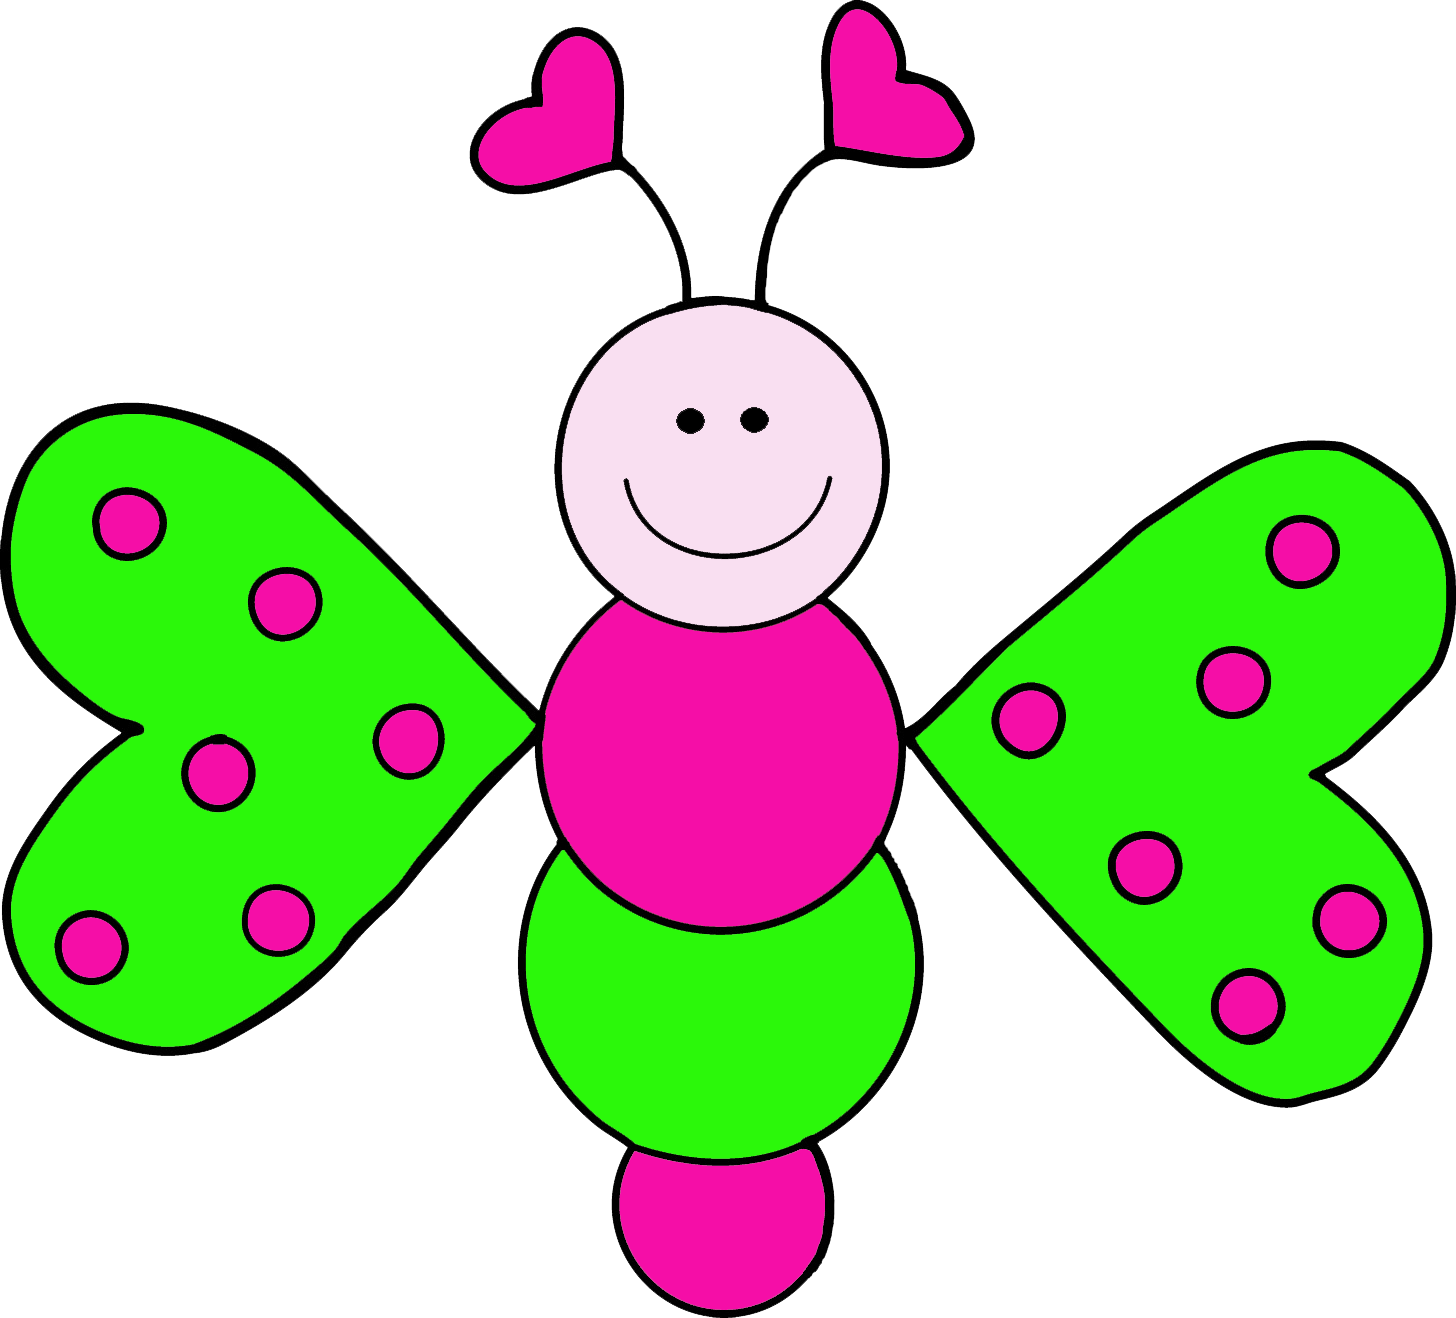 Caterpillar clipart love bug Clip Art Goes Download to